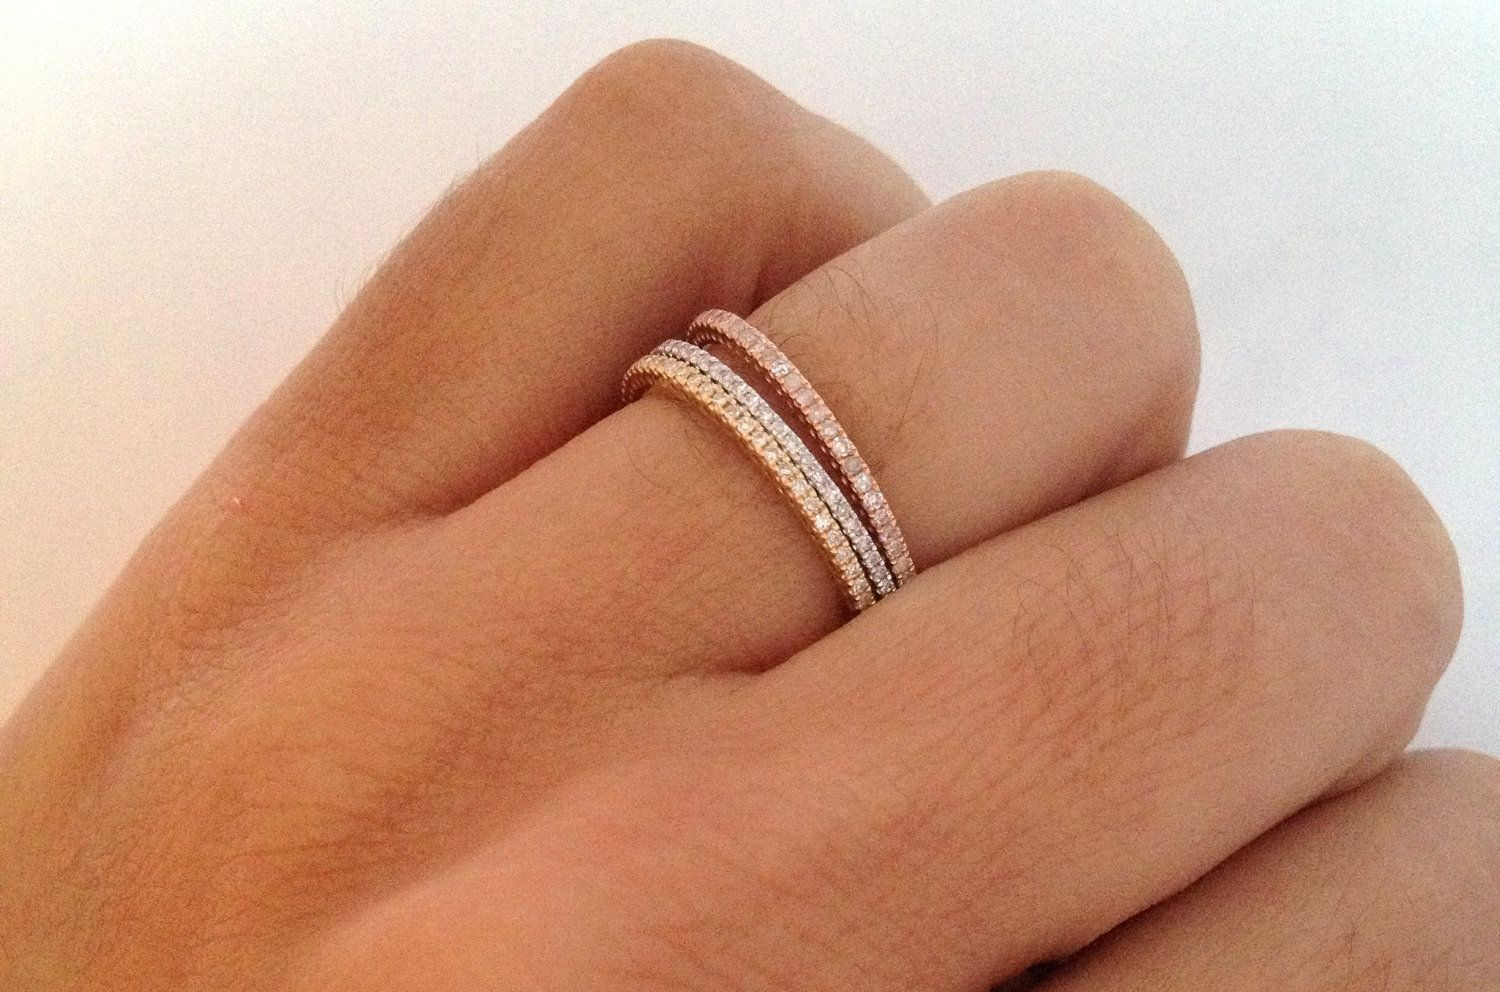 product bands ring yellow gold puregemsjewels cut wide pav princess engagement micro pave